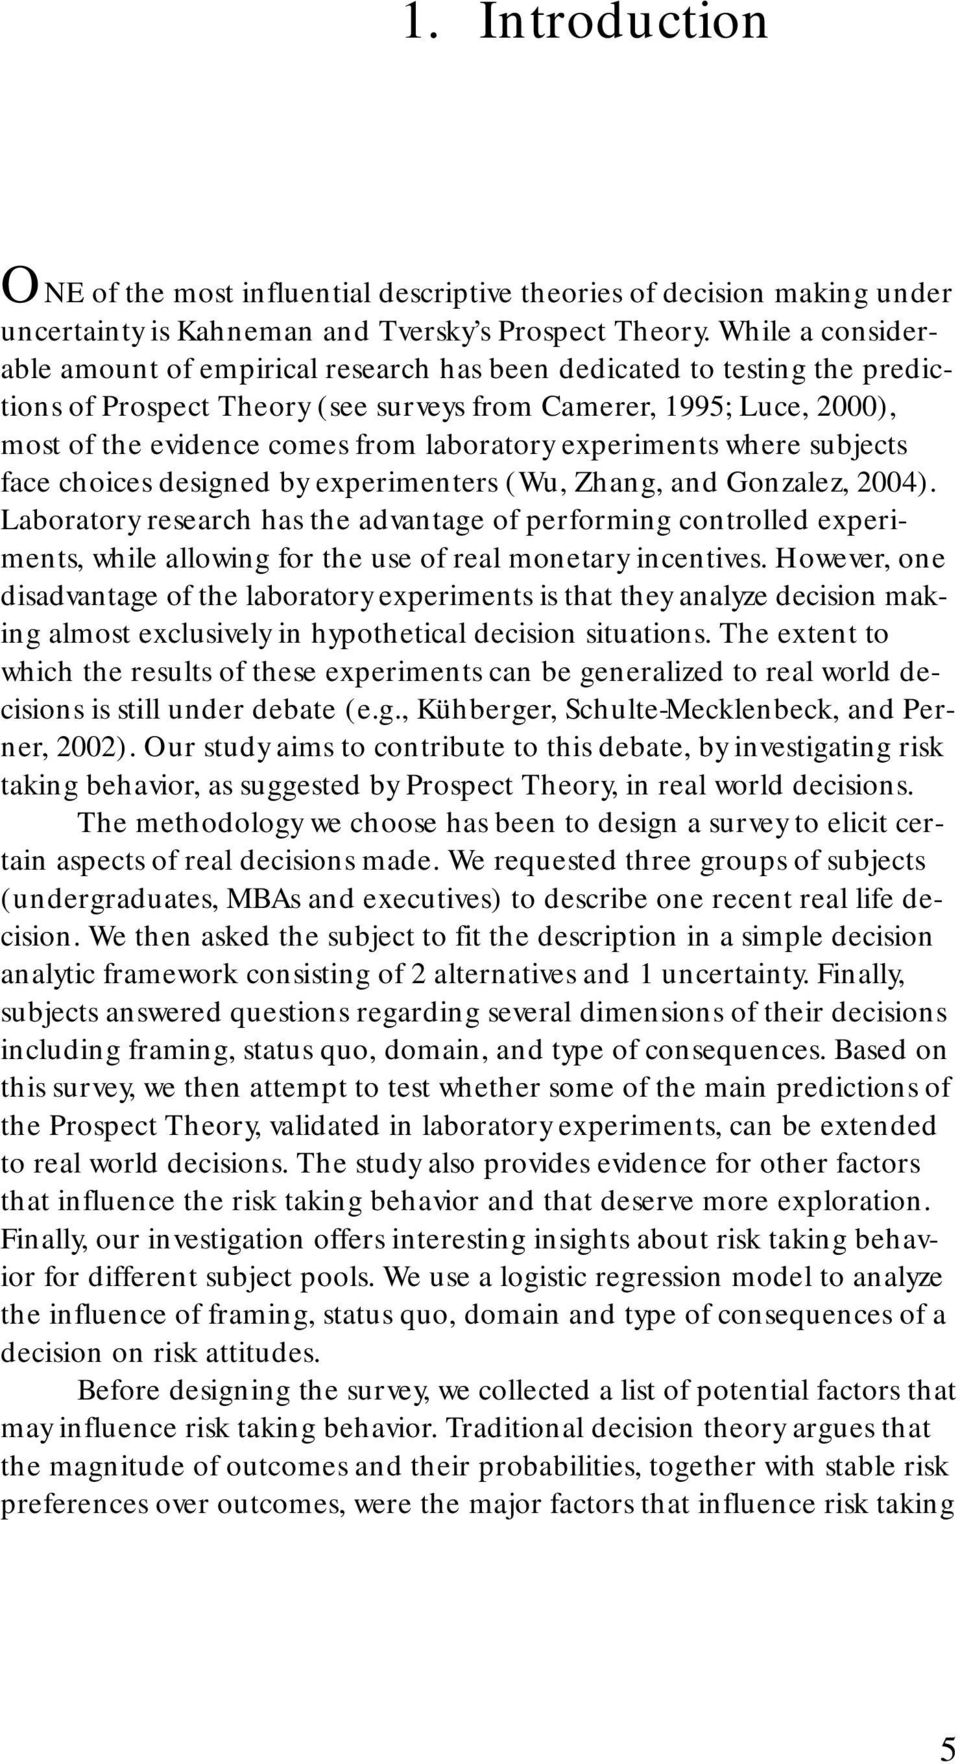 laboratory experiments where subjects face choices designed by experimenters (Wu, Zhang, and Gonzalez, 2004).